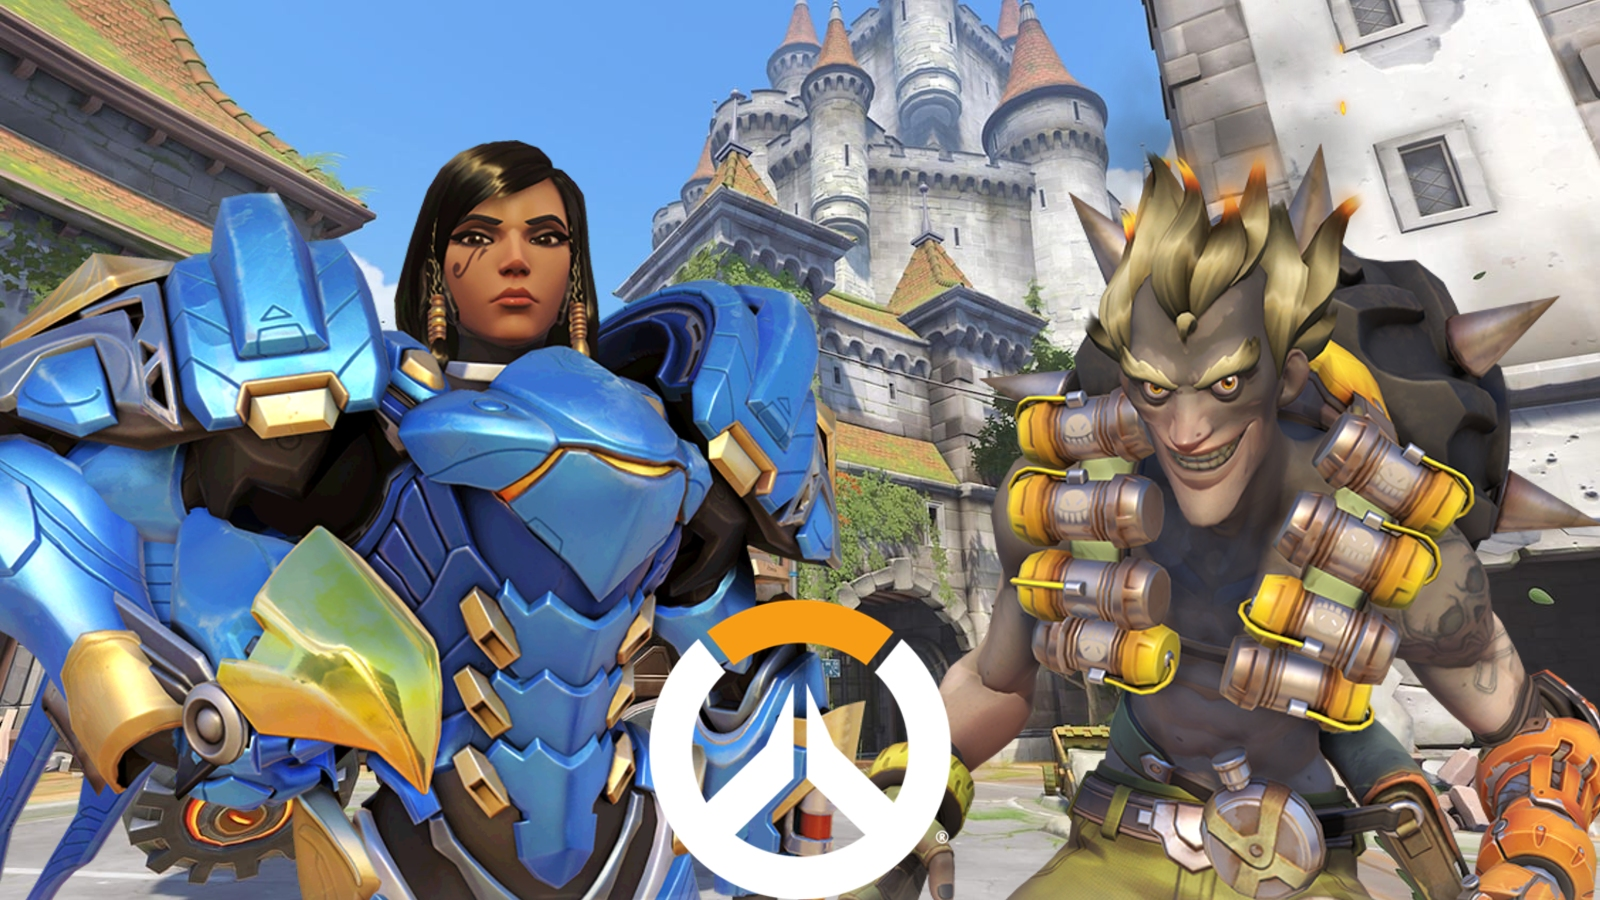 Overwatch Junkrat and Pharah on Eichenwalde